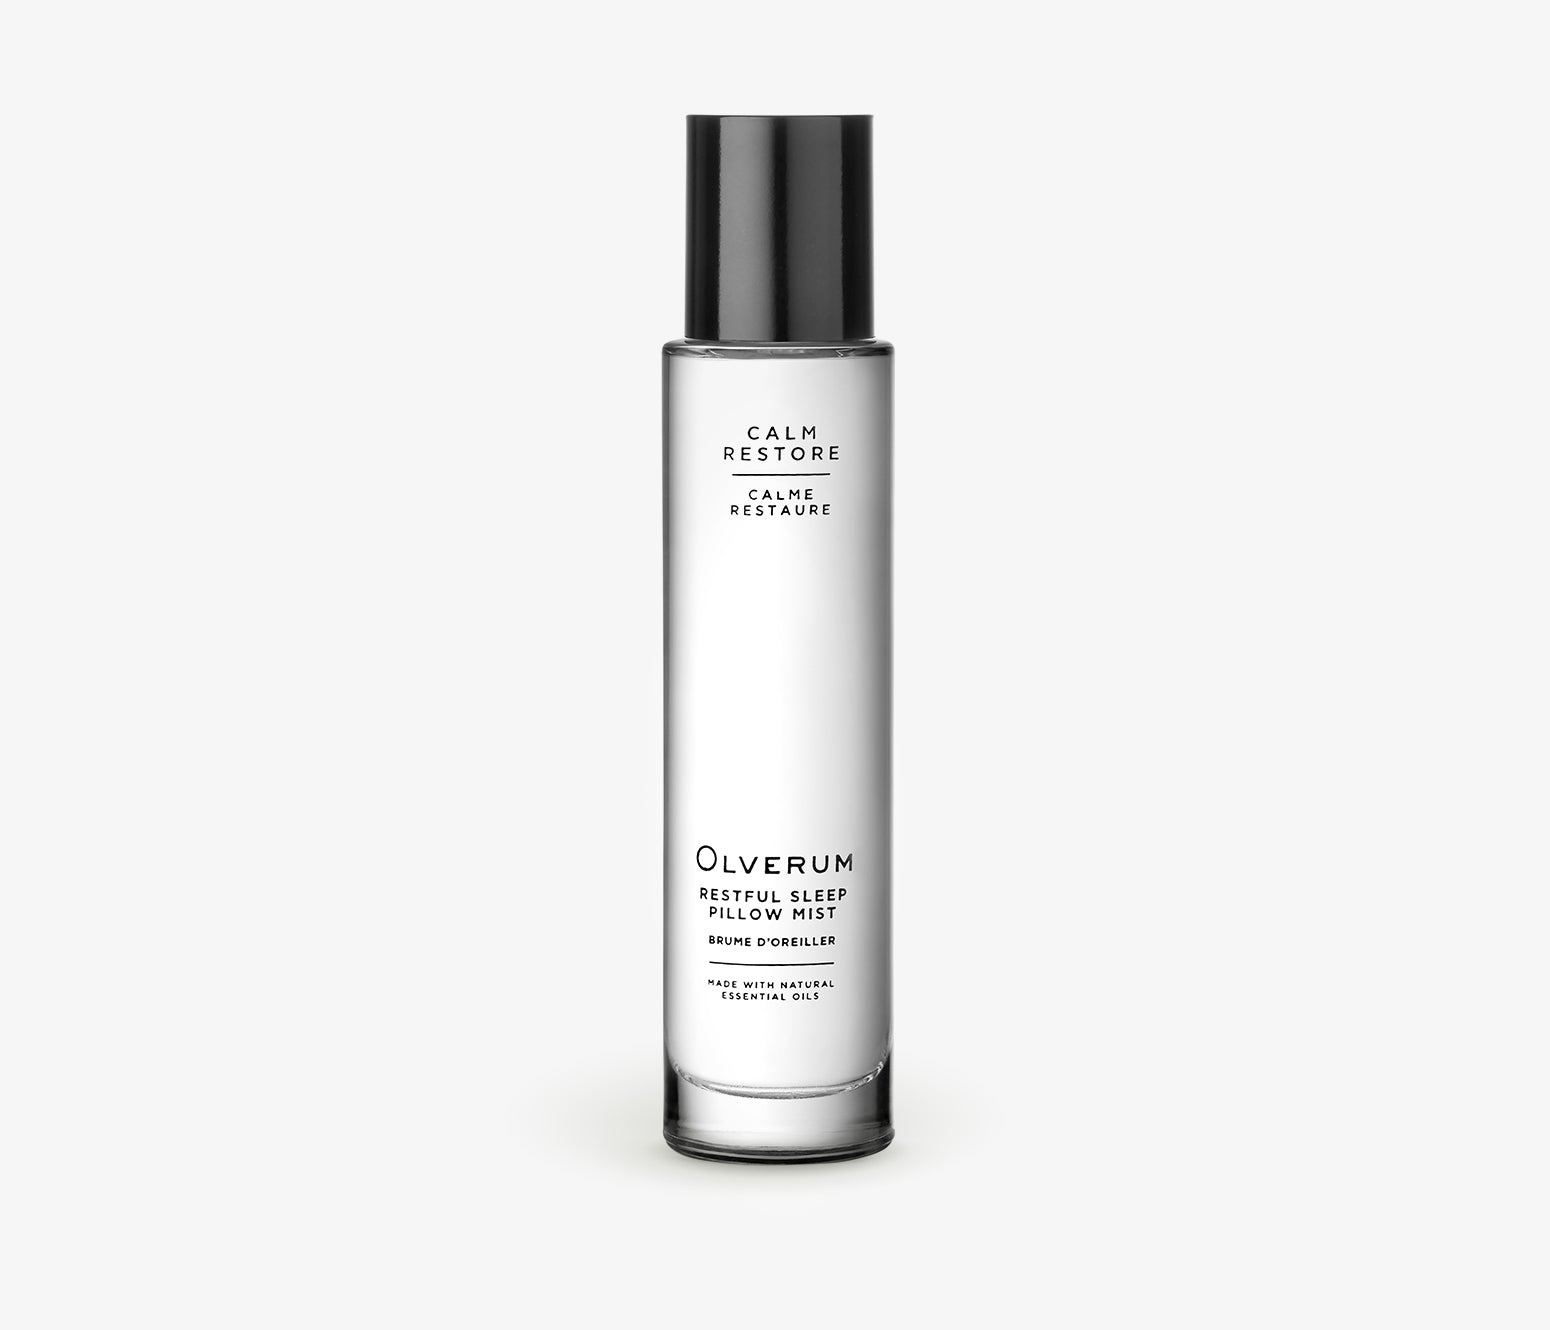 Olverum Restful Sleep Pillow Mist